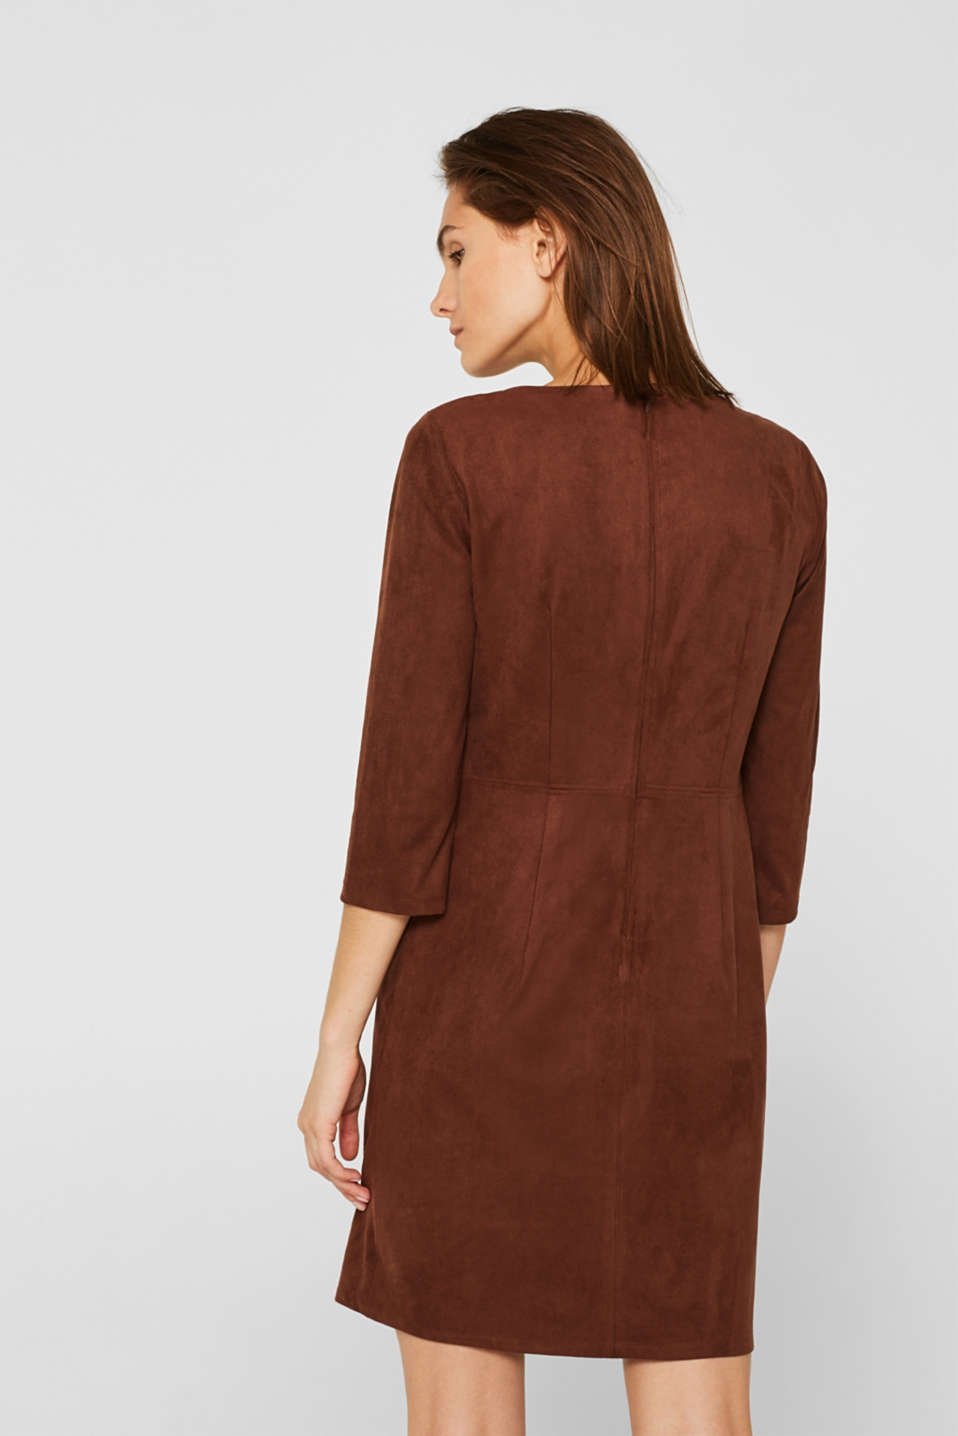 Stretch faux leather dress, DARK BROWN, detail image number 3